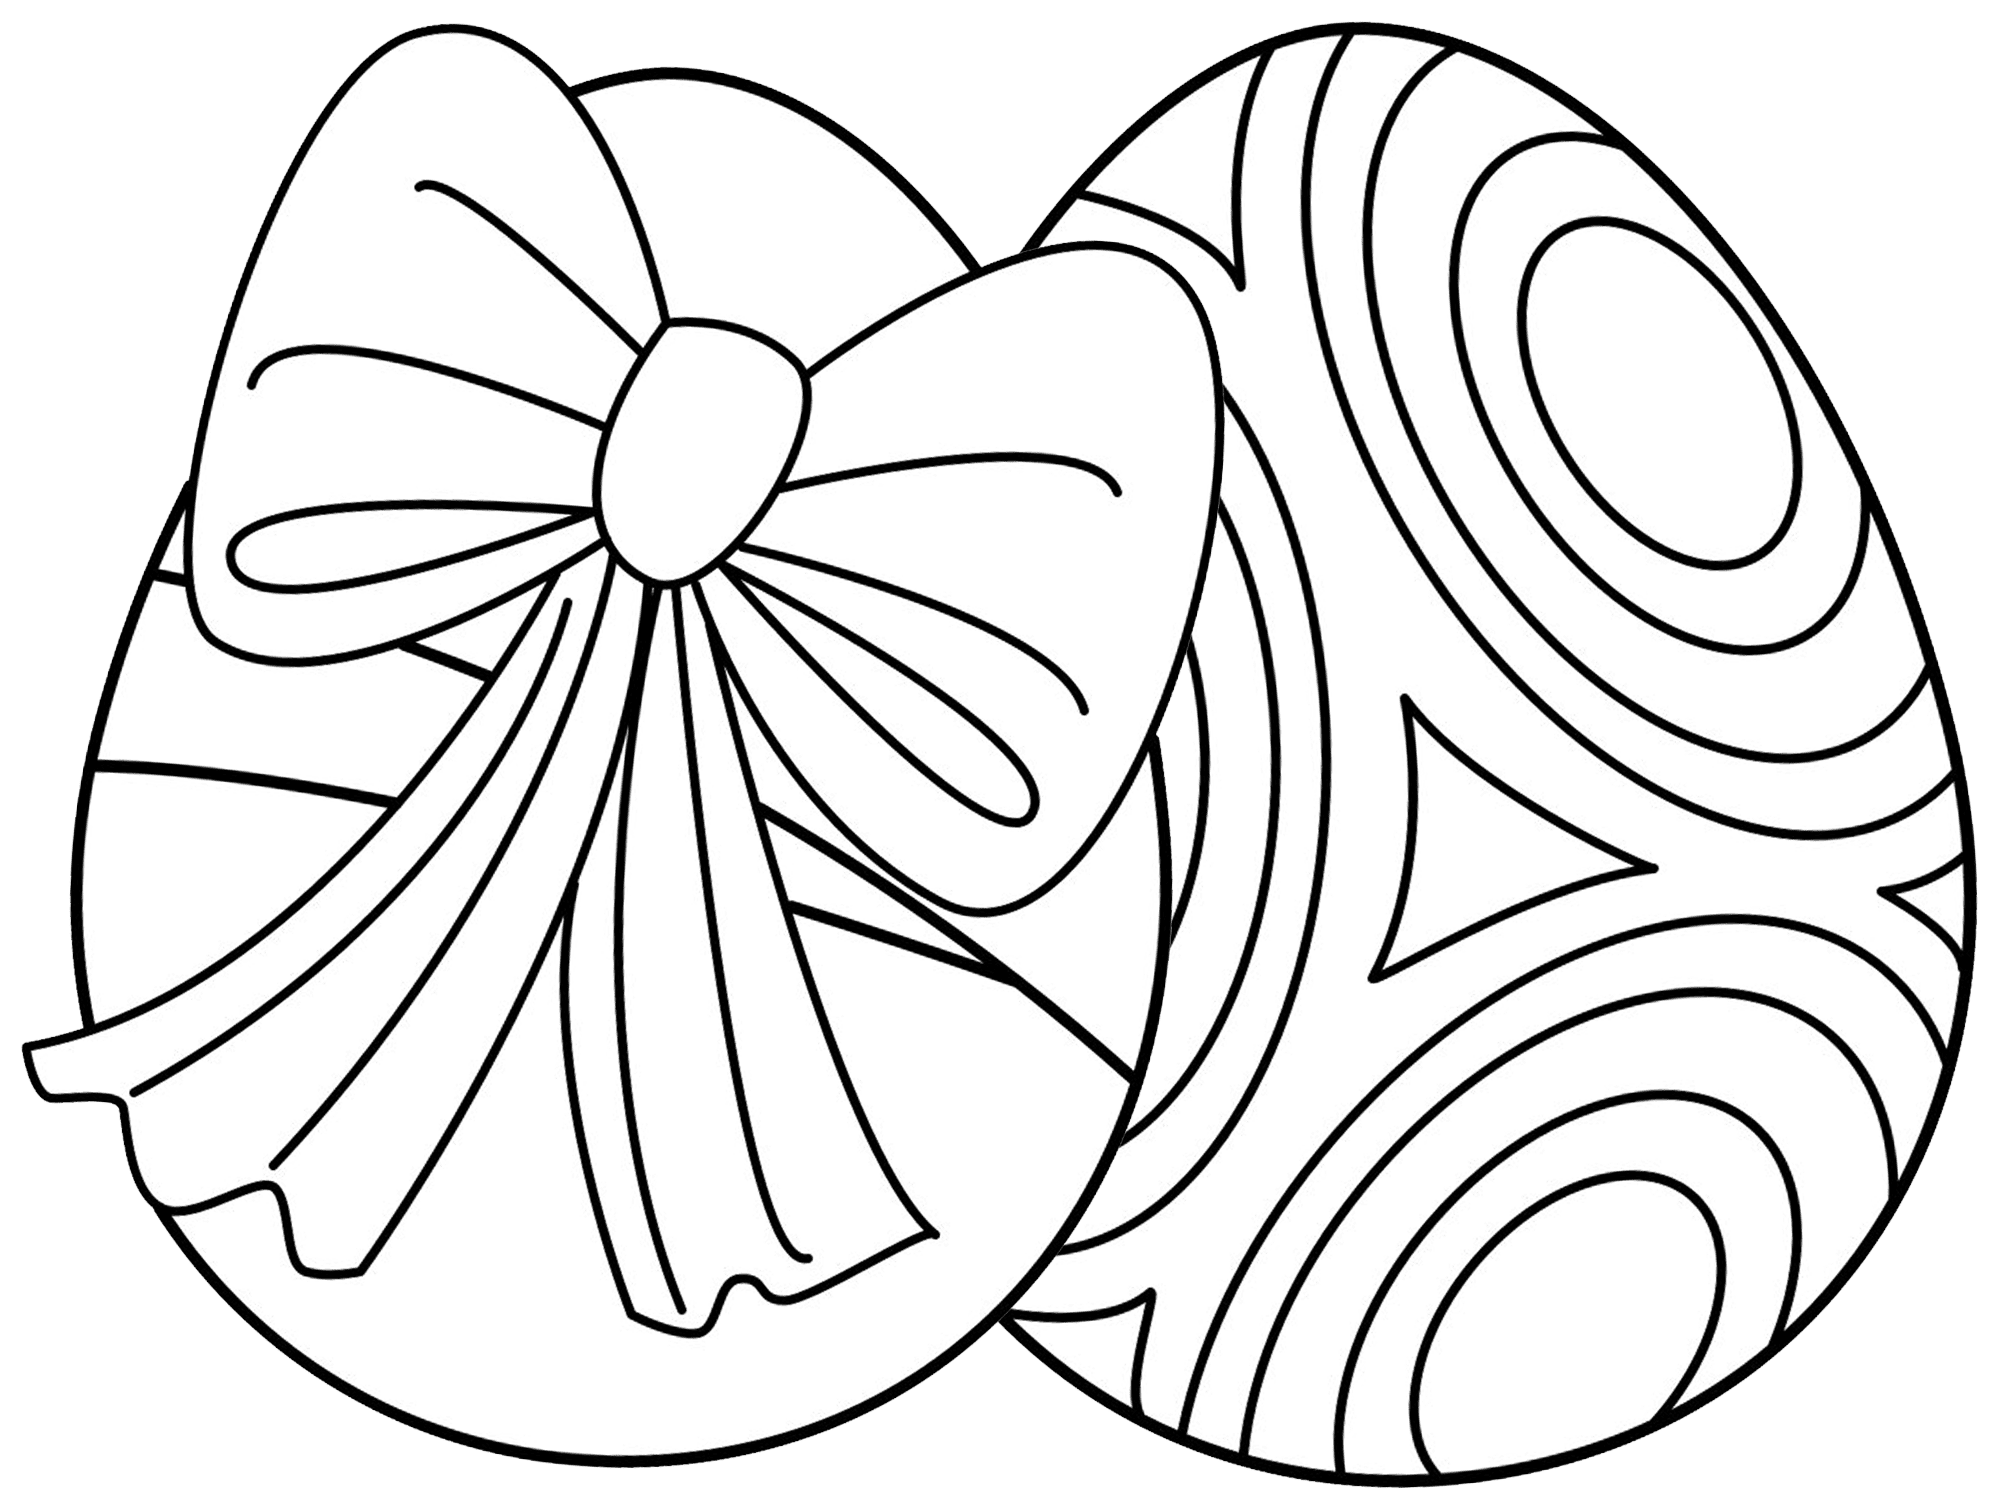 271 Free, Printable Easter Egg Coloring Pages